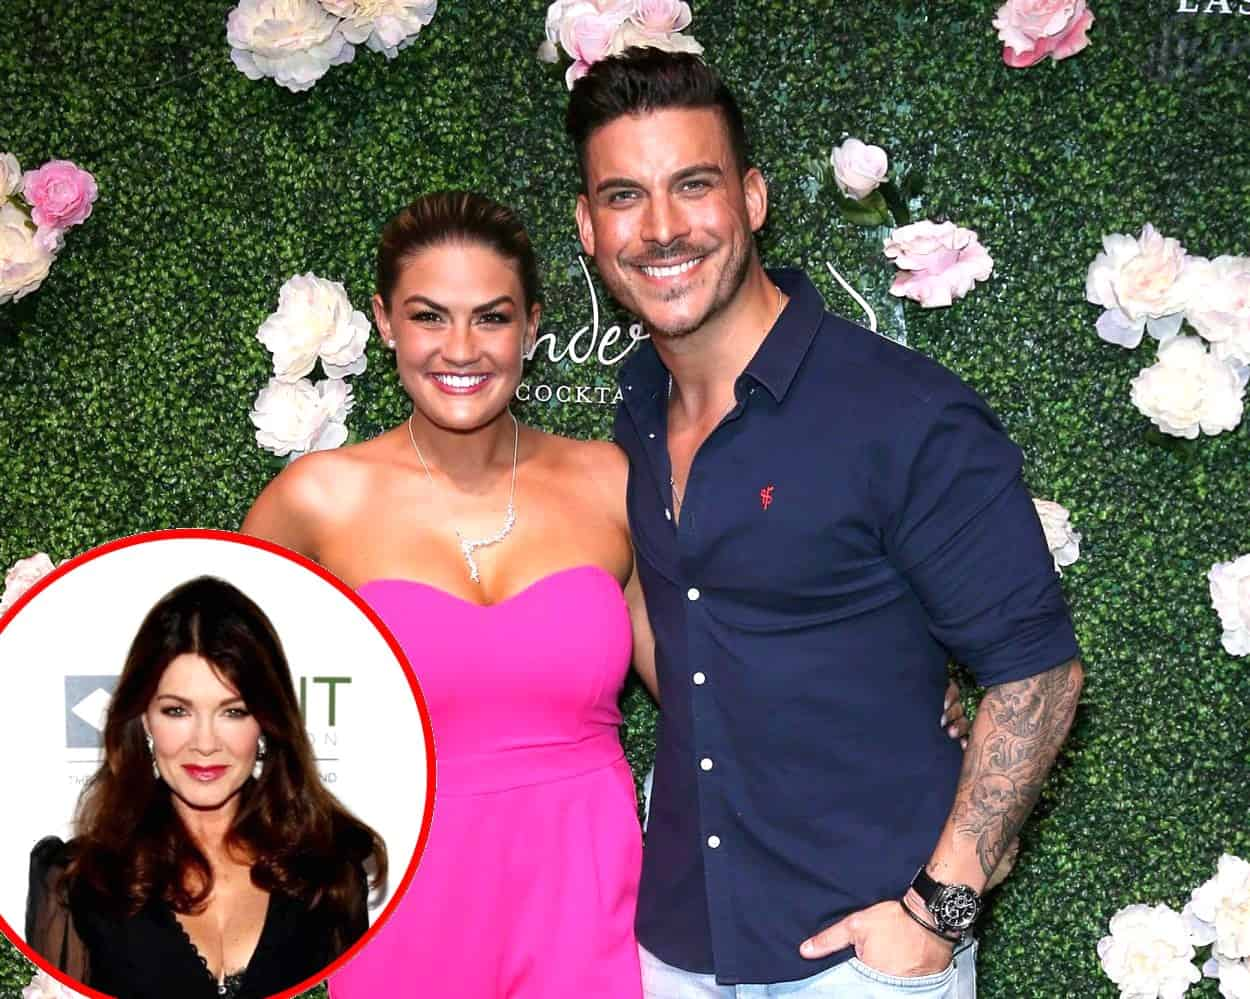 Jax Taylor Responds to Report Stating Marriage Brittany Cartwright is 'Struggling' as Lisa Vanderpump Reacts to Claim About Vanderpump Rules Couple